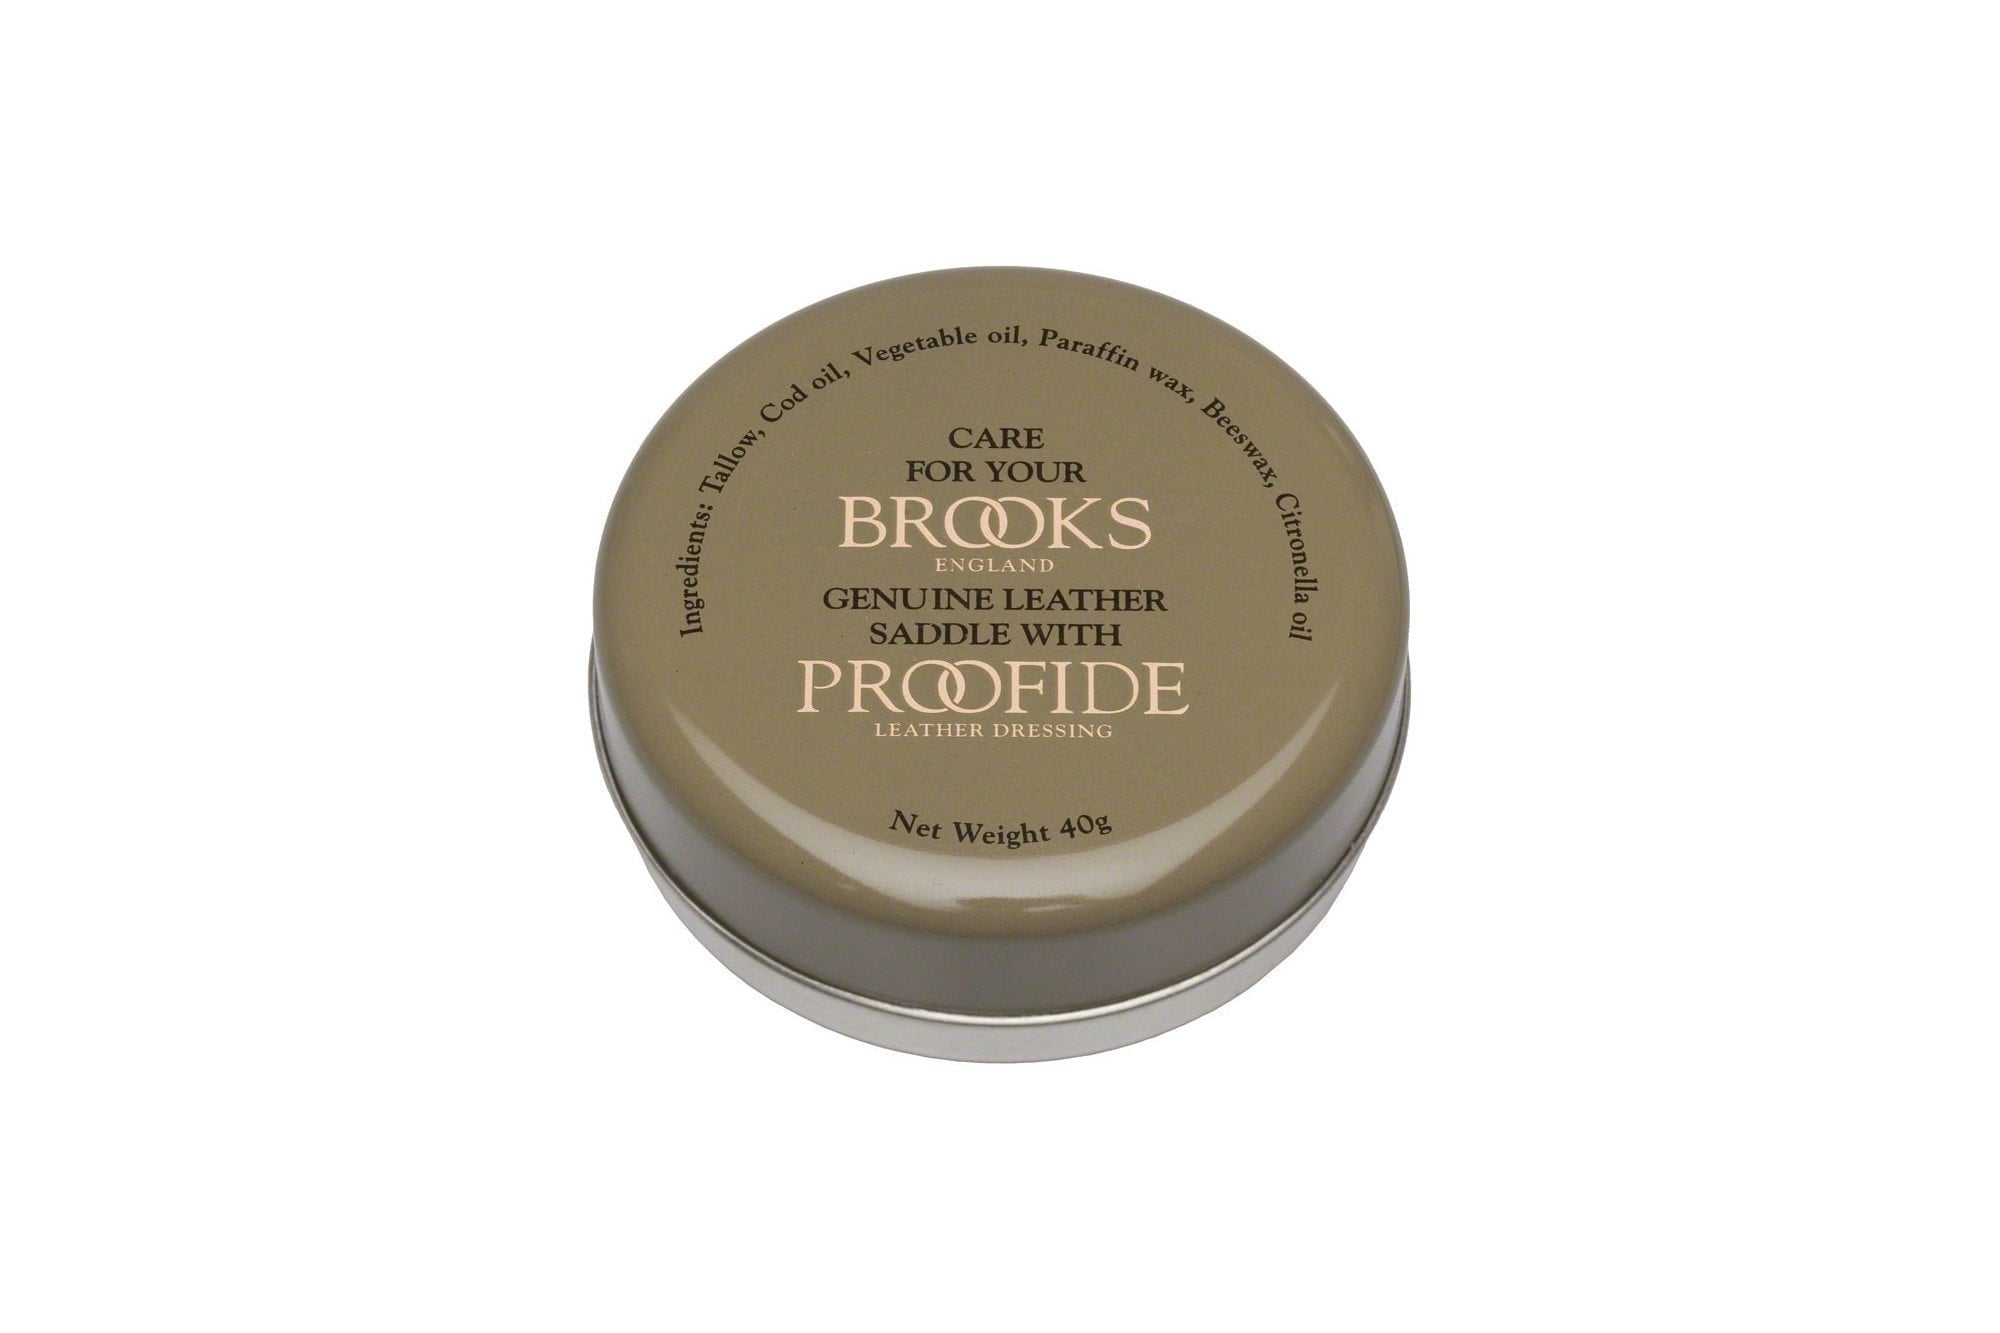 Brooks - Proofide Treatment